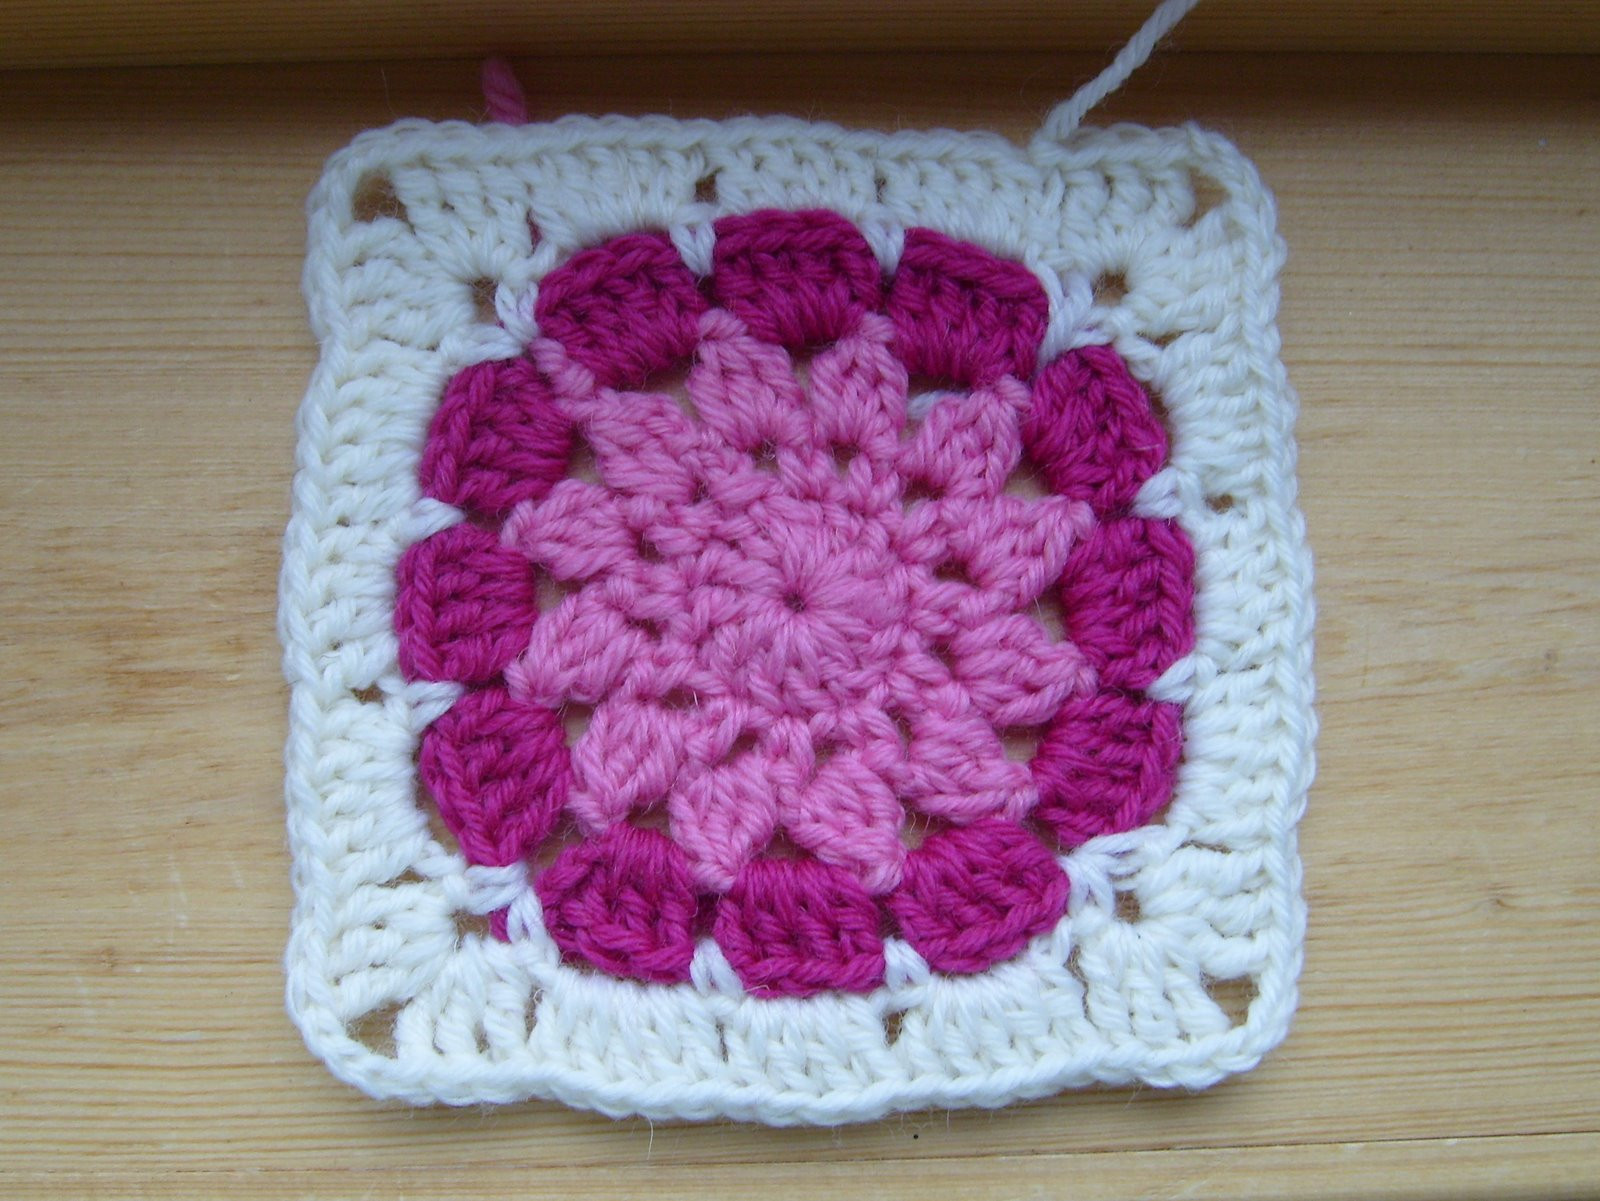 Crochet Squares Luxury Renee S Crochet Crochet Squares Of Charming 43 Ideas Crochet Squares